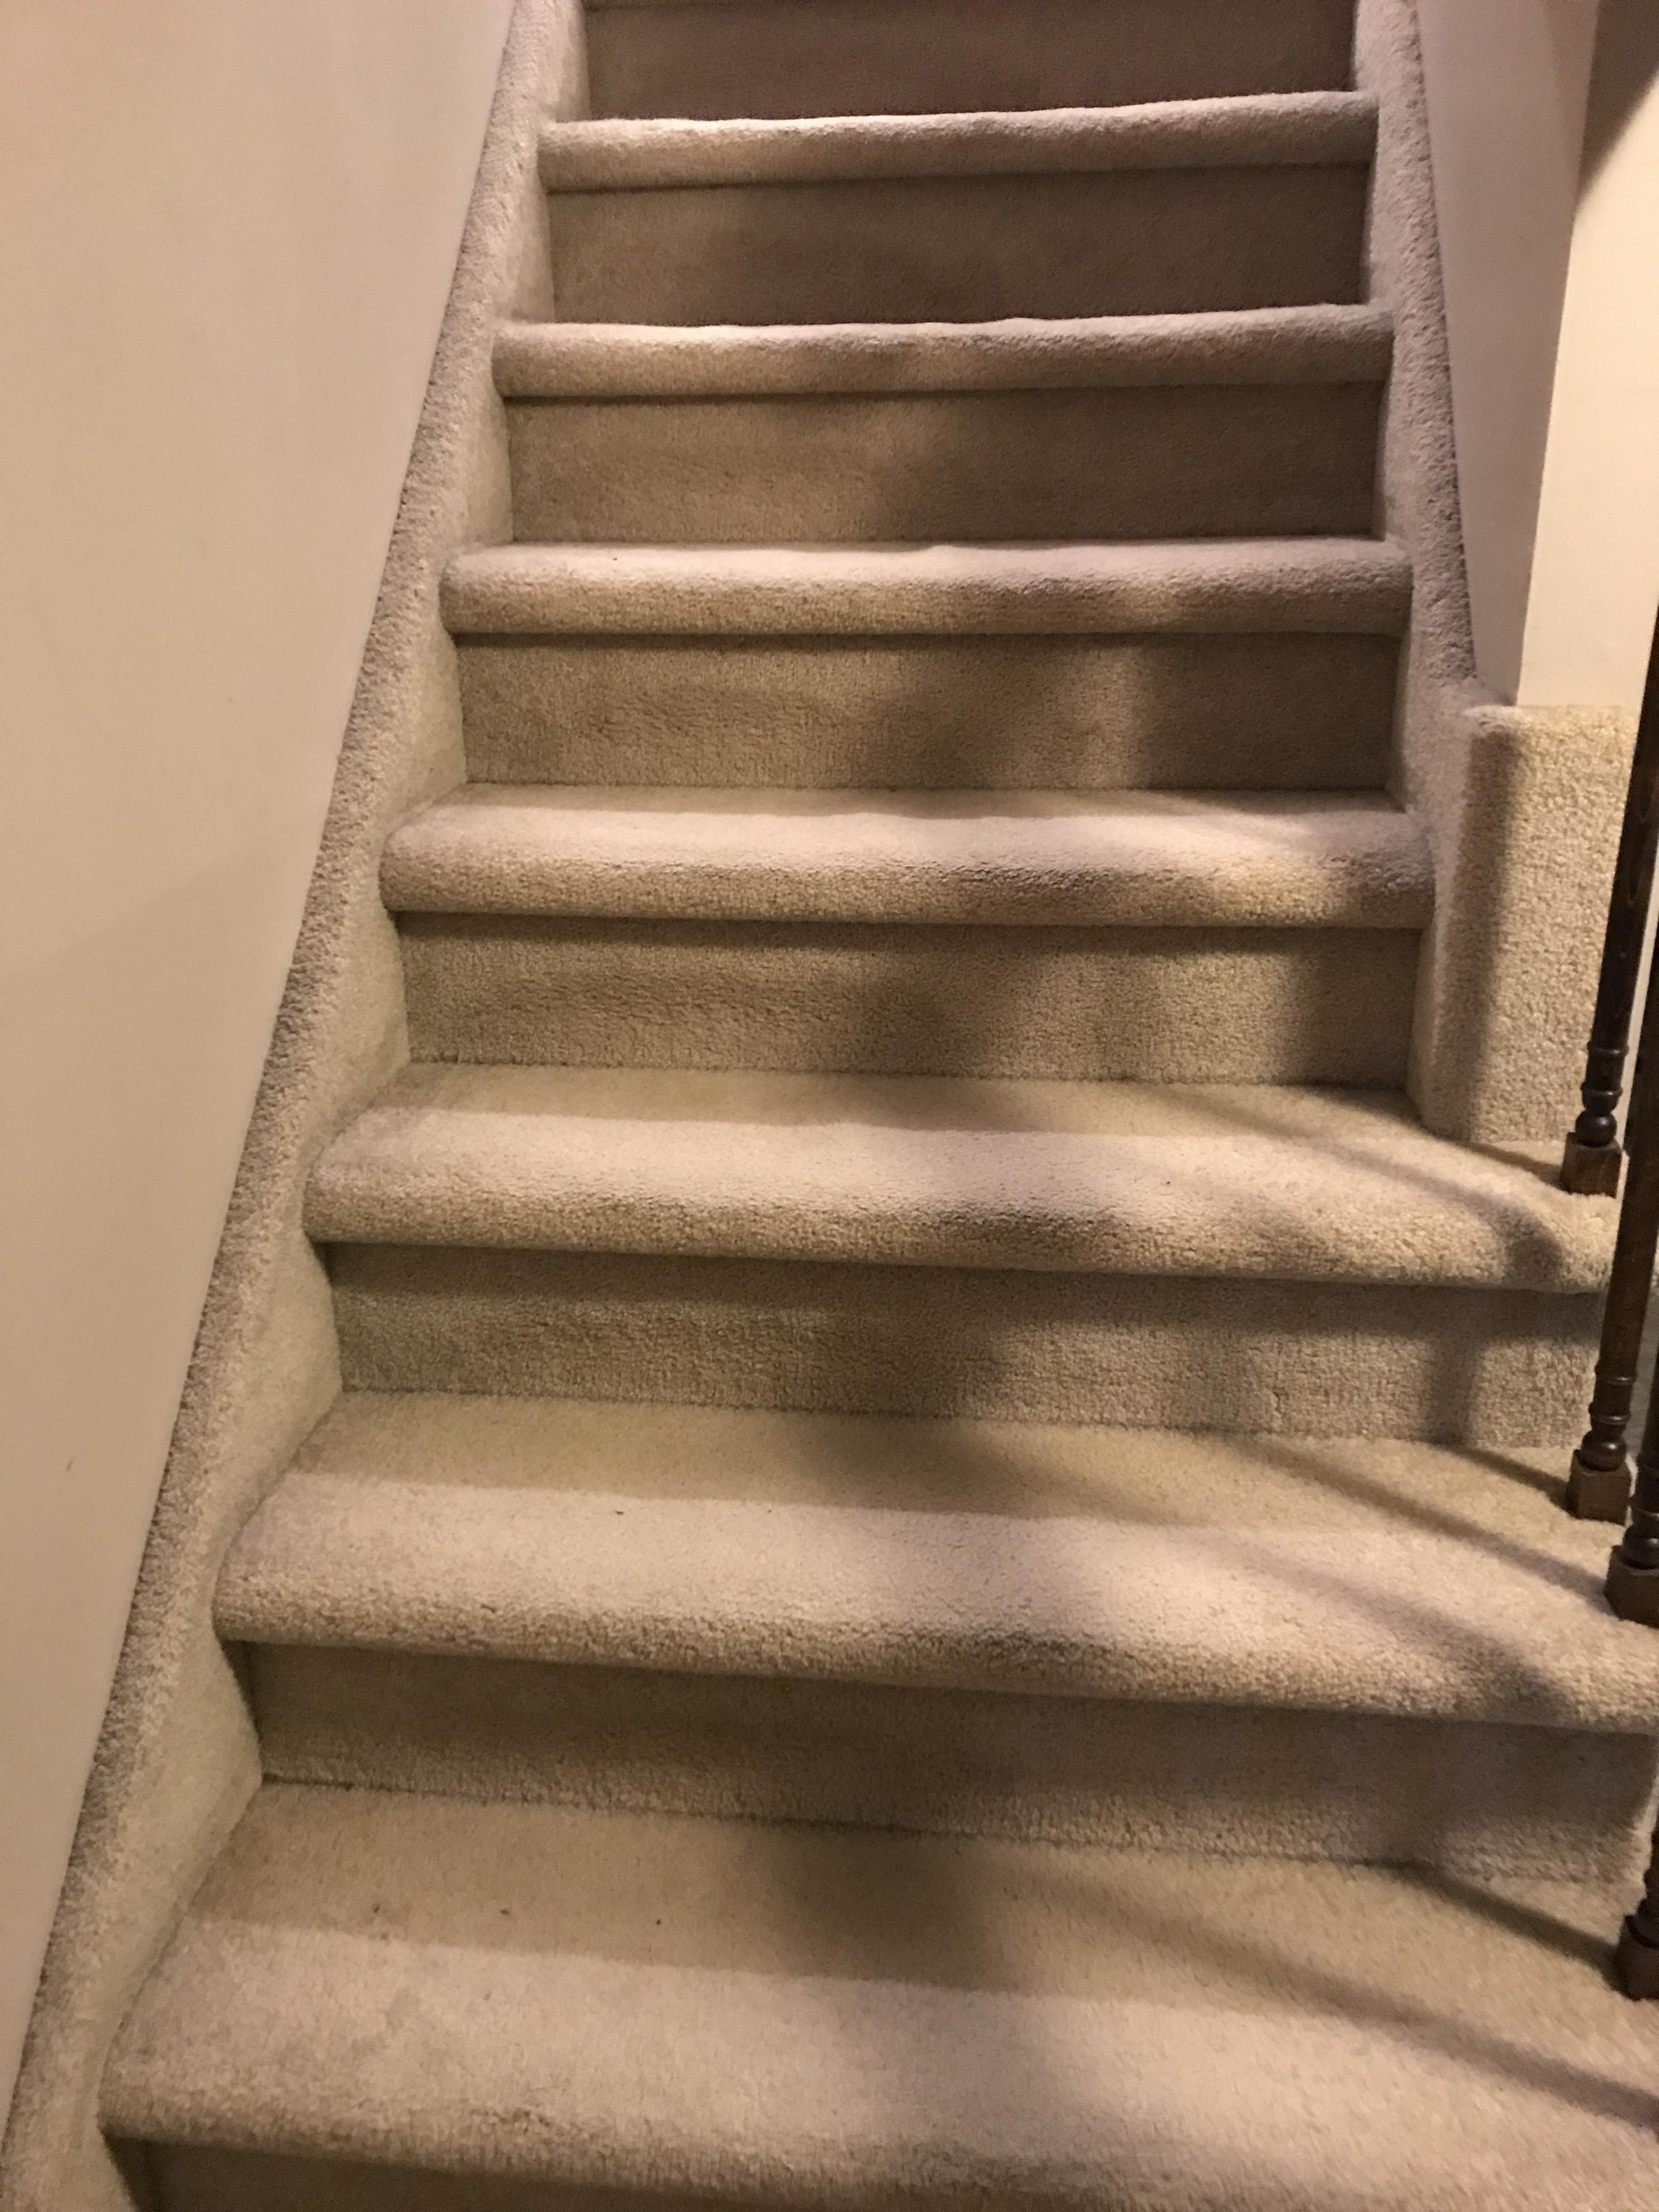 I Did Not Convert My Carpet Stairs To Hardwood Notinteresting   Converting Carpeted Stairs To Hardwood   Stair Case   Treads   Staircase Makeover   Stain   Wood Flooring